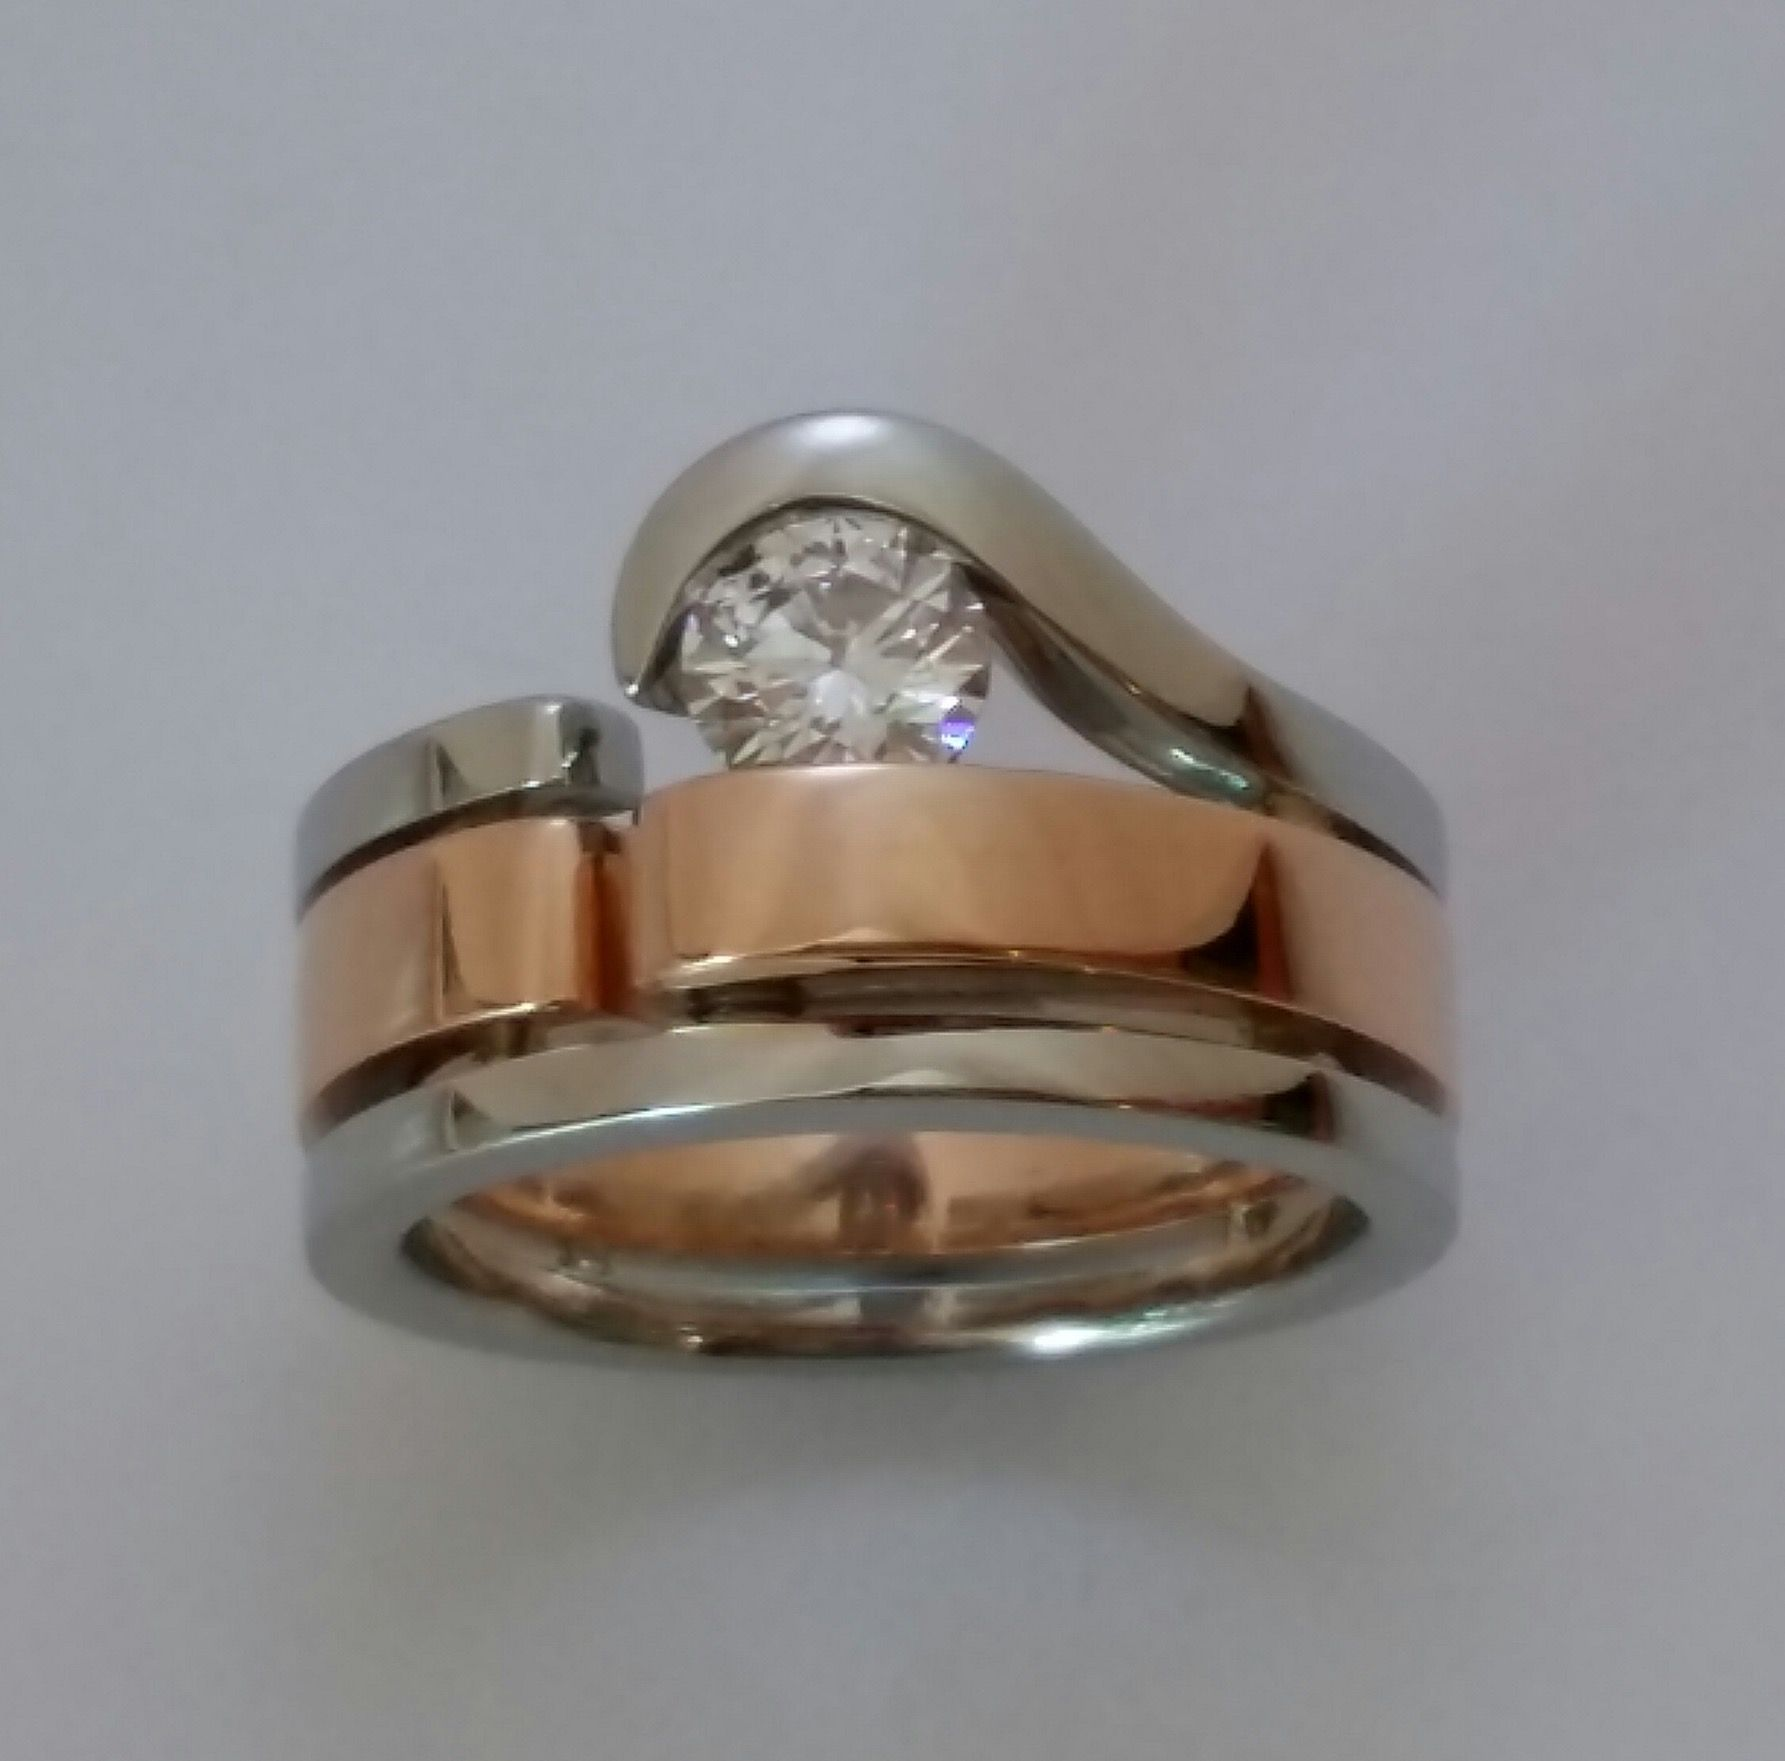 Handcrafted and one of a kind 19kt white gold, 18kt rose gold and diamond engagement ring